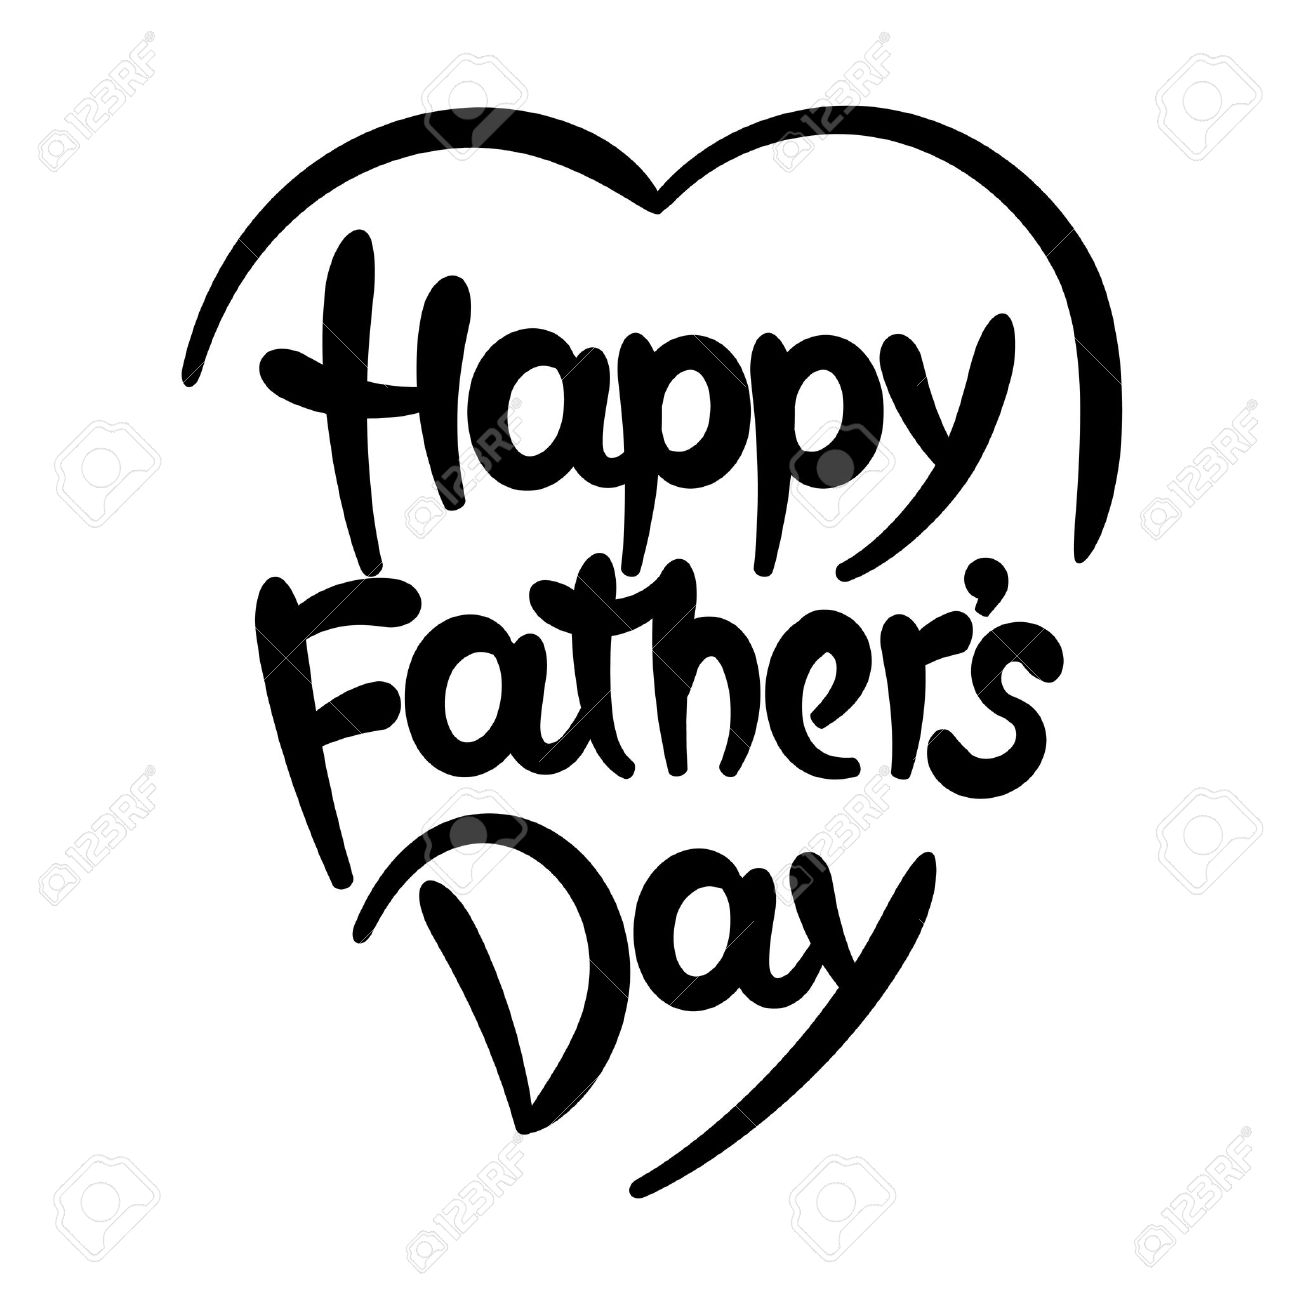 134 Happy Fathers Day free clipart.